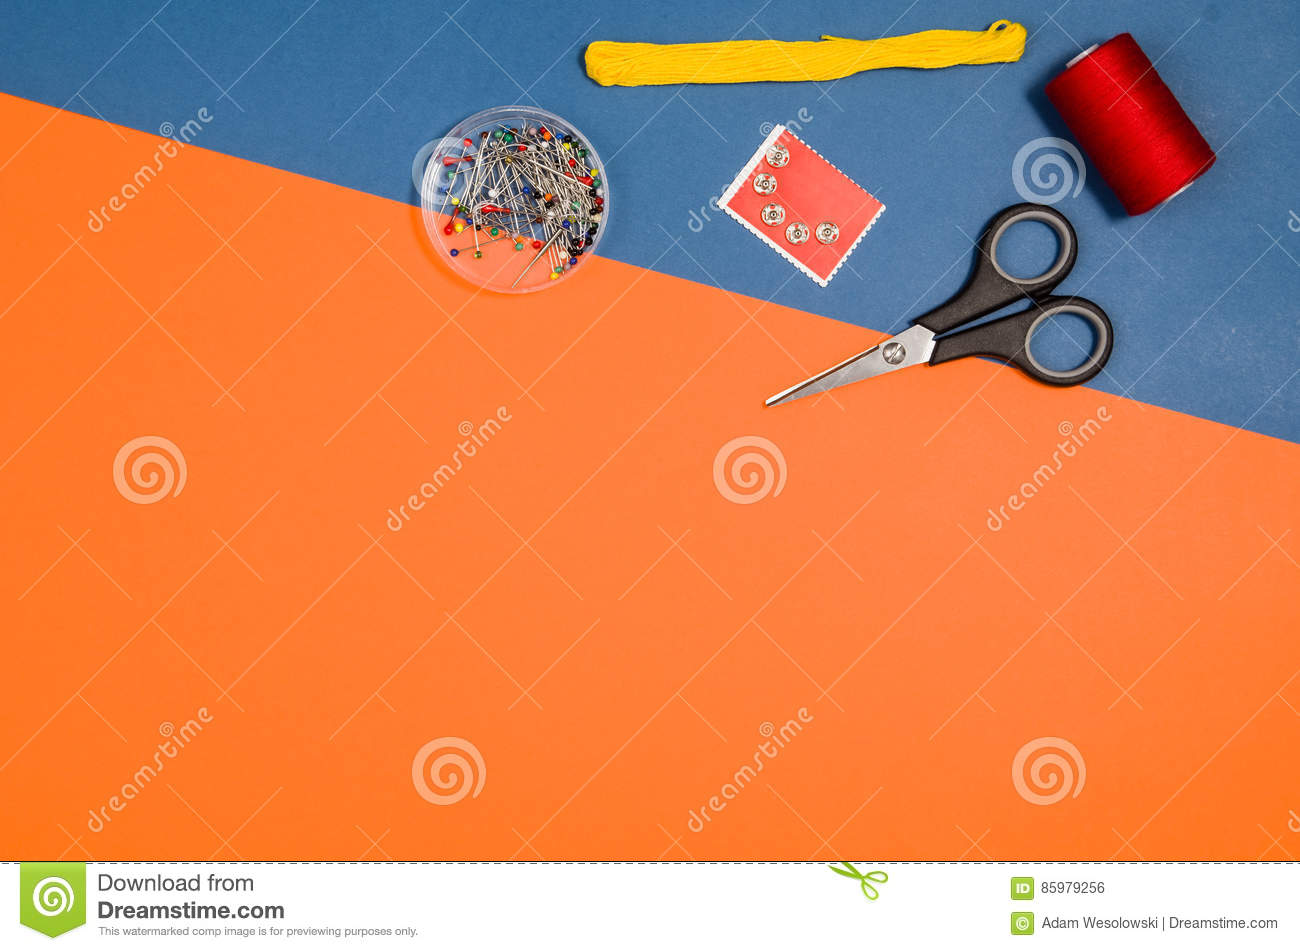 Top view of sewing or knitting accessories over blue background